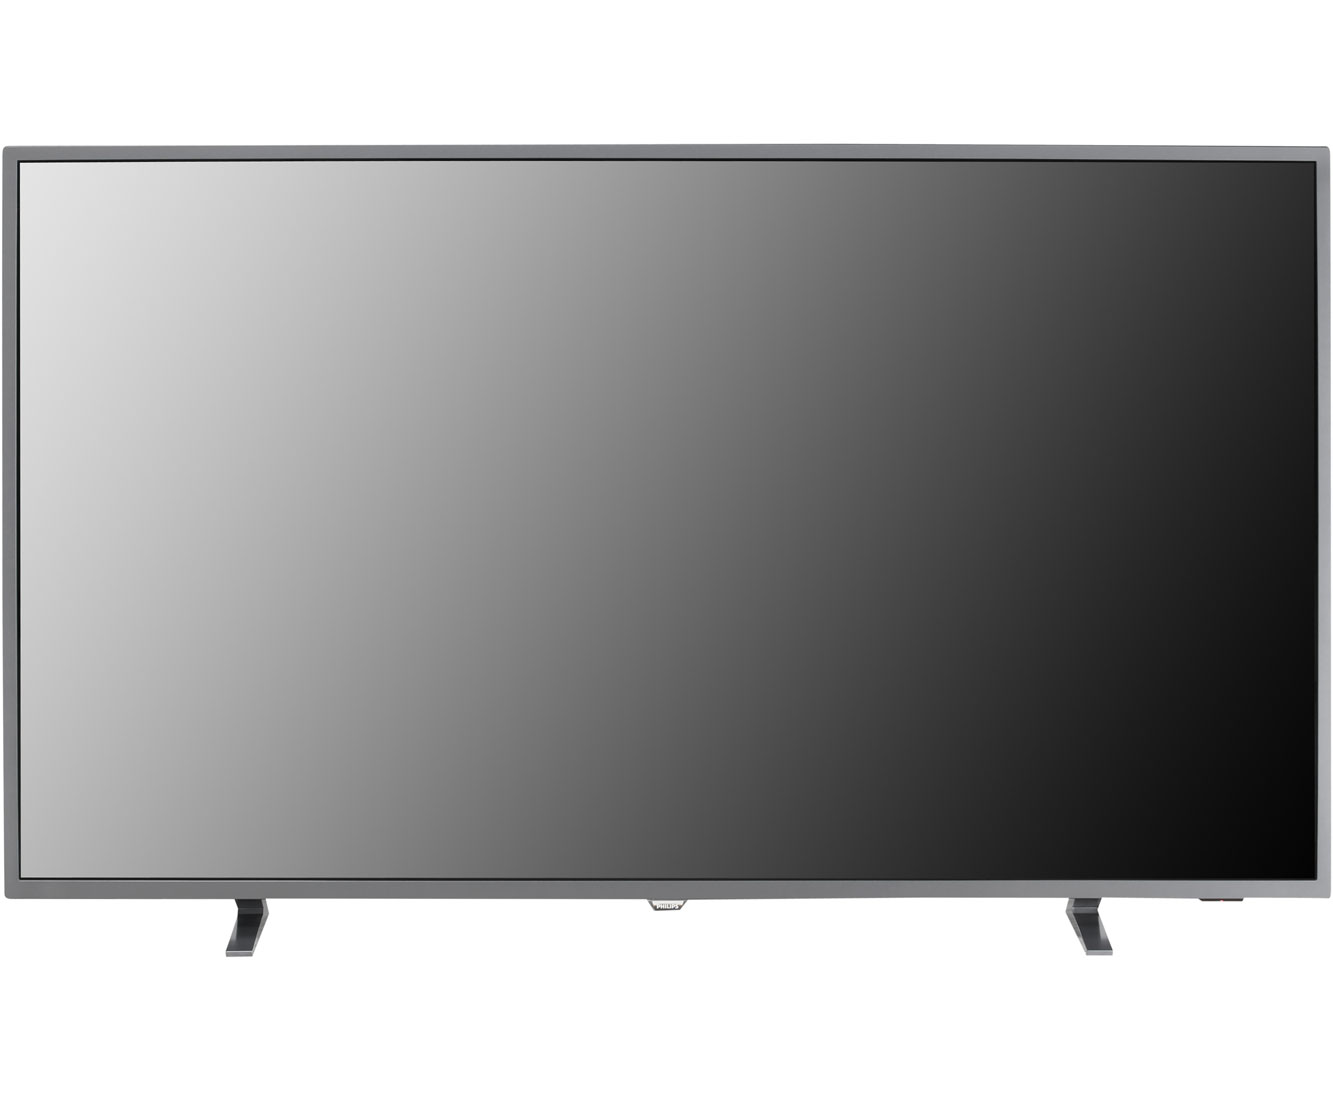 philips tv 65pus6703 12 4k uhd led fernseher 164 cm 65. Black Bedroom Furniture Sets. Home Design Ideas